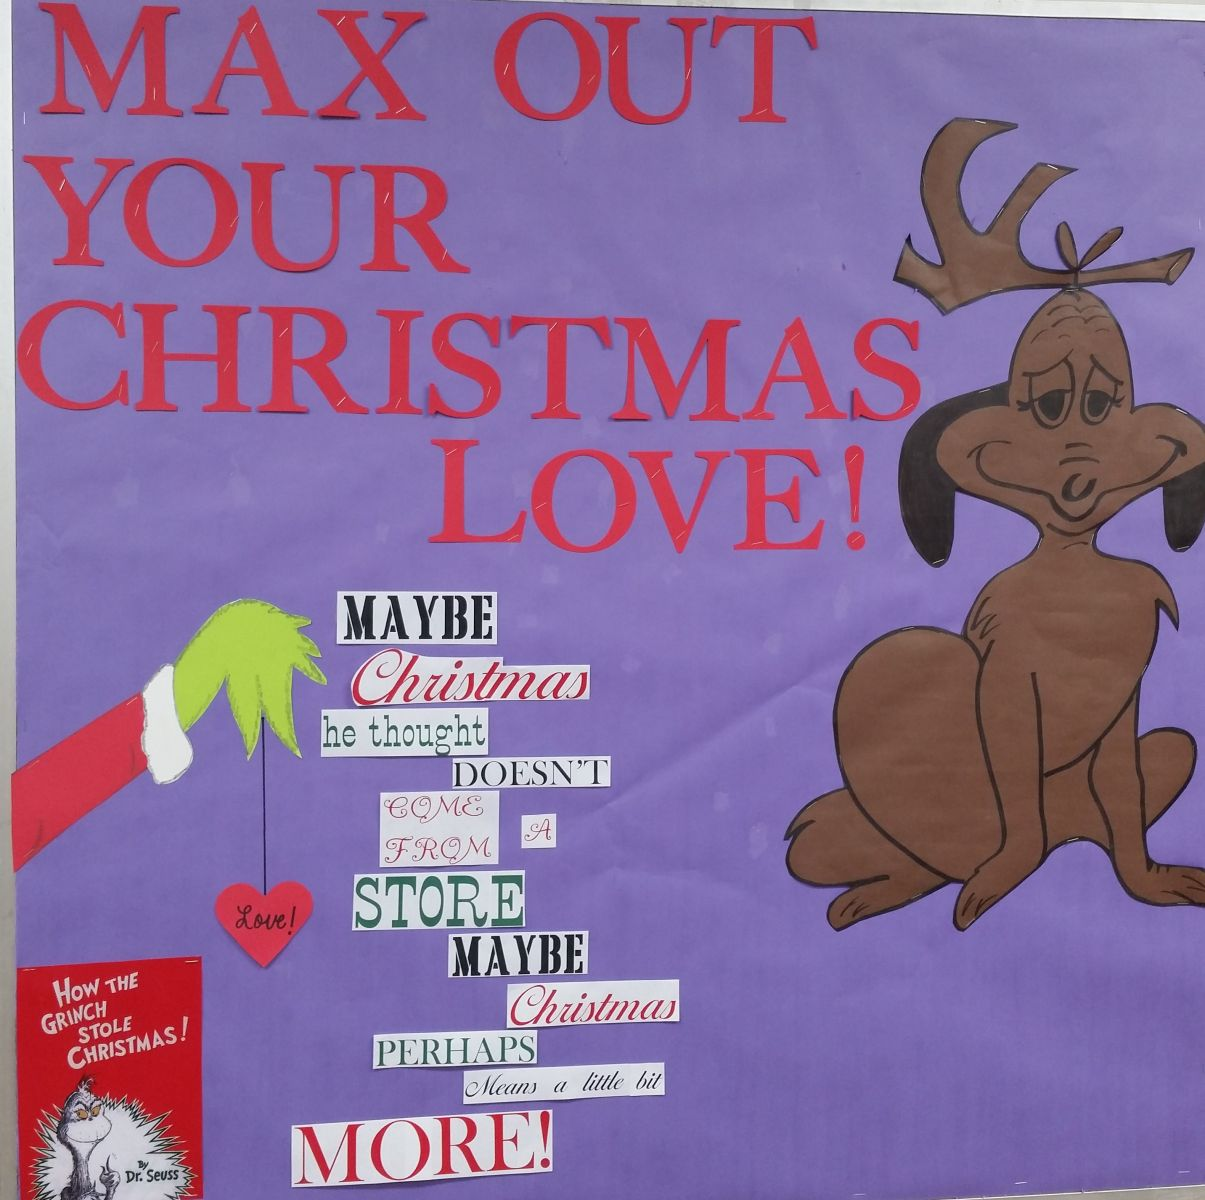 Max out your Christmas Love